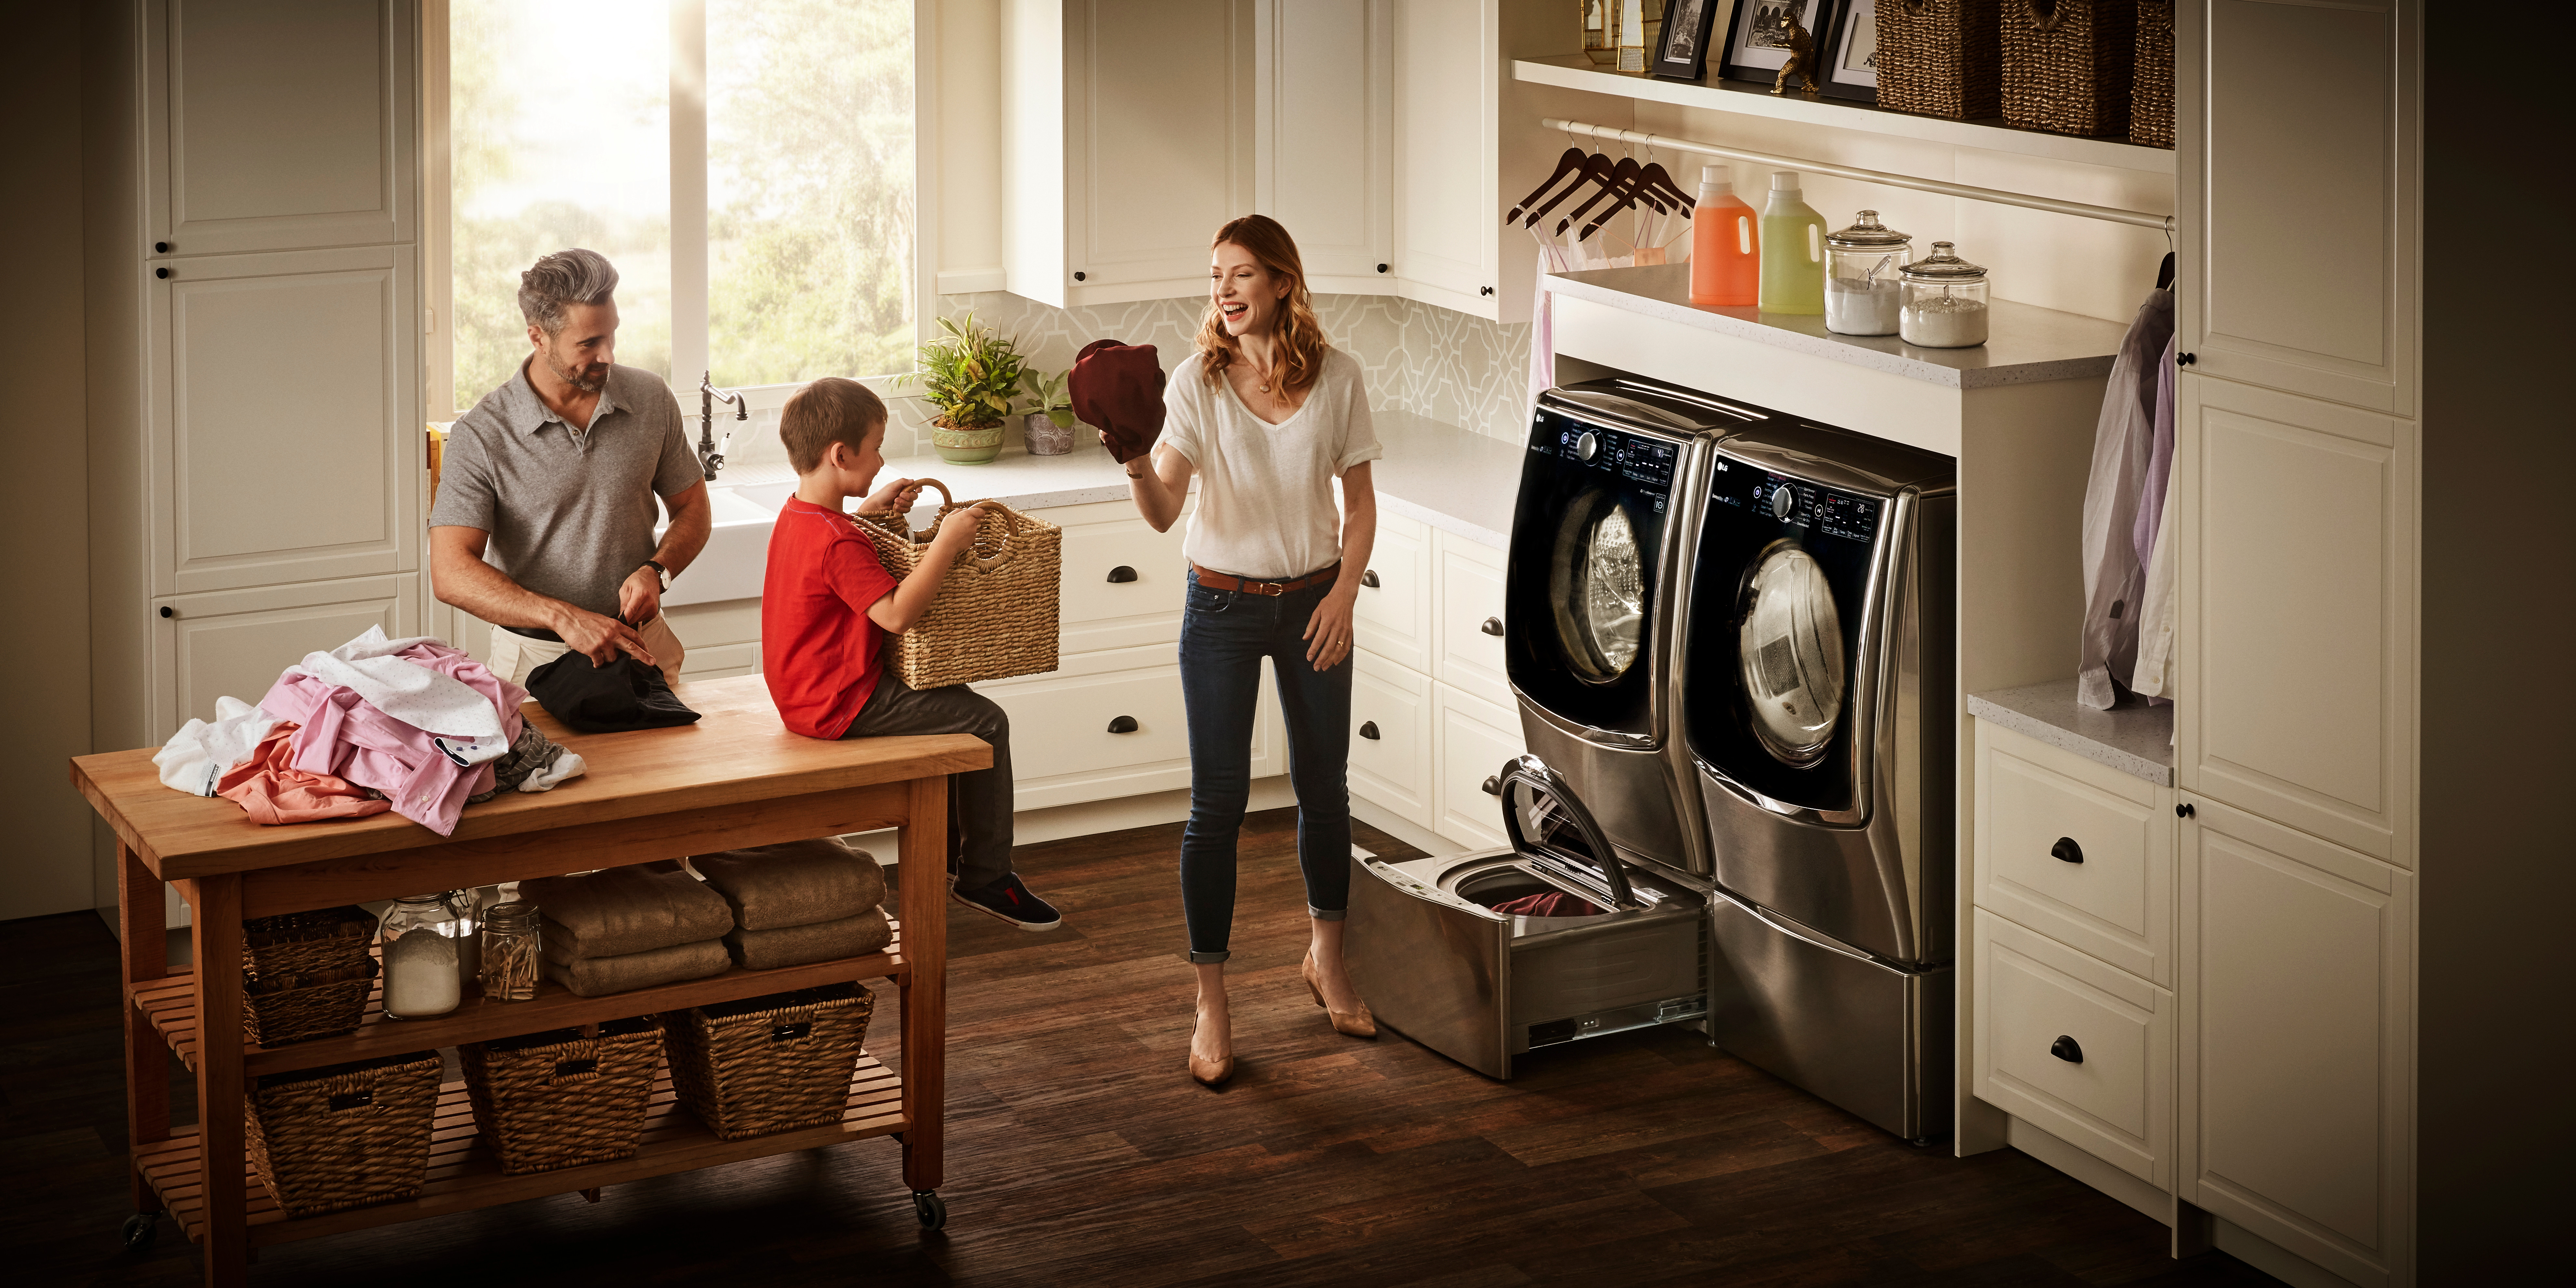 Upgrade Your Appliances at Best Buy With LG